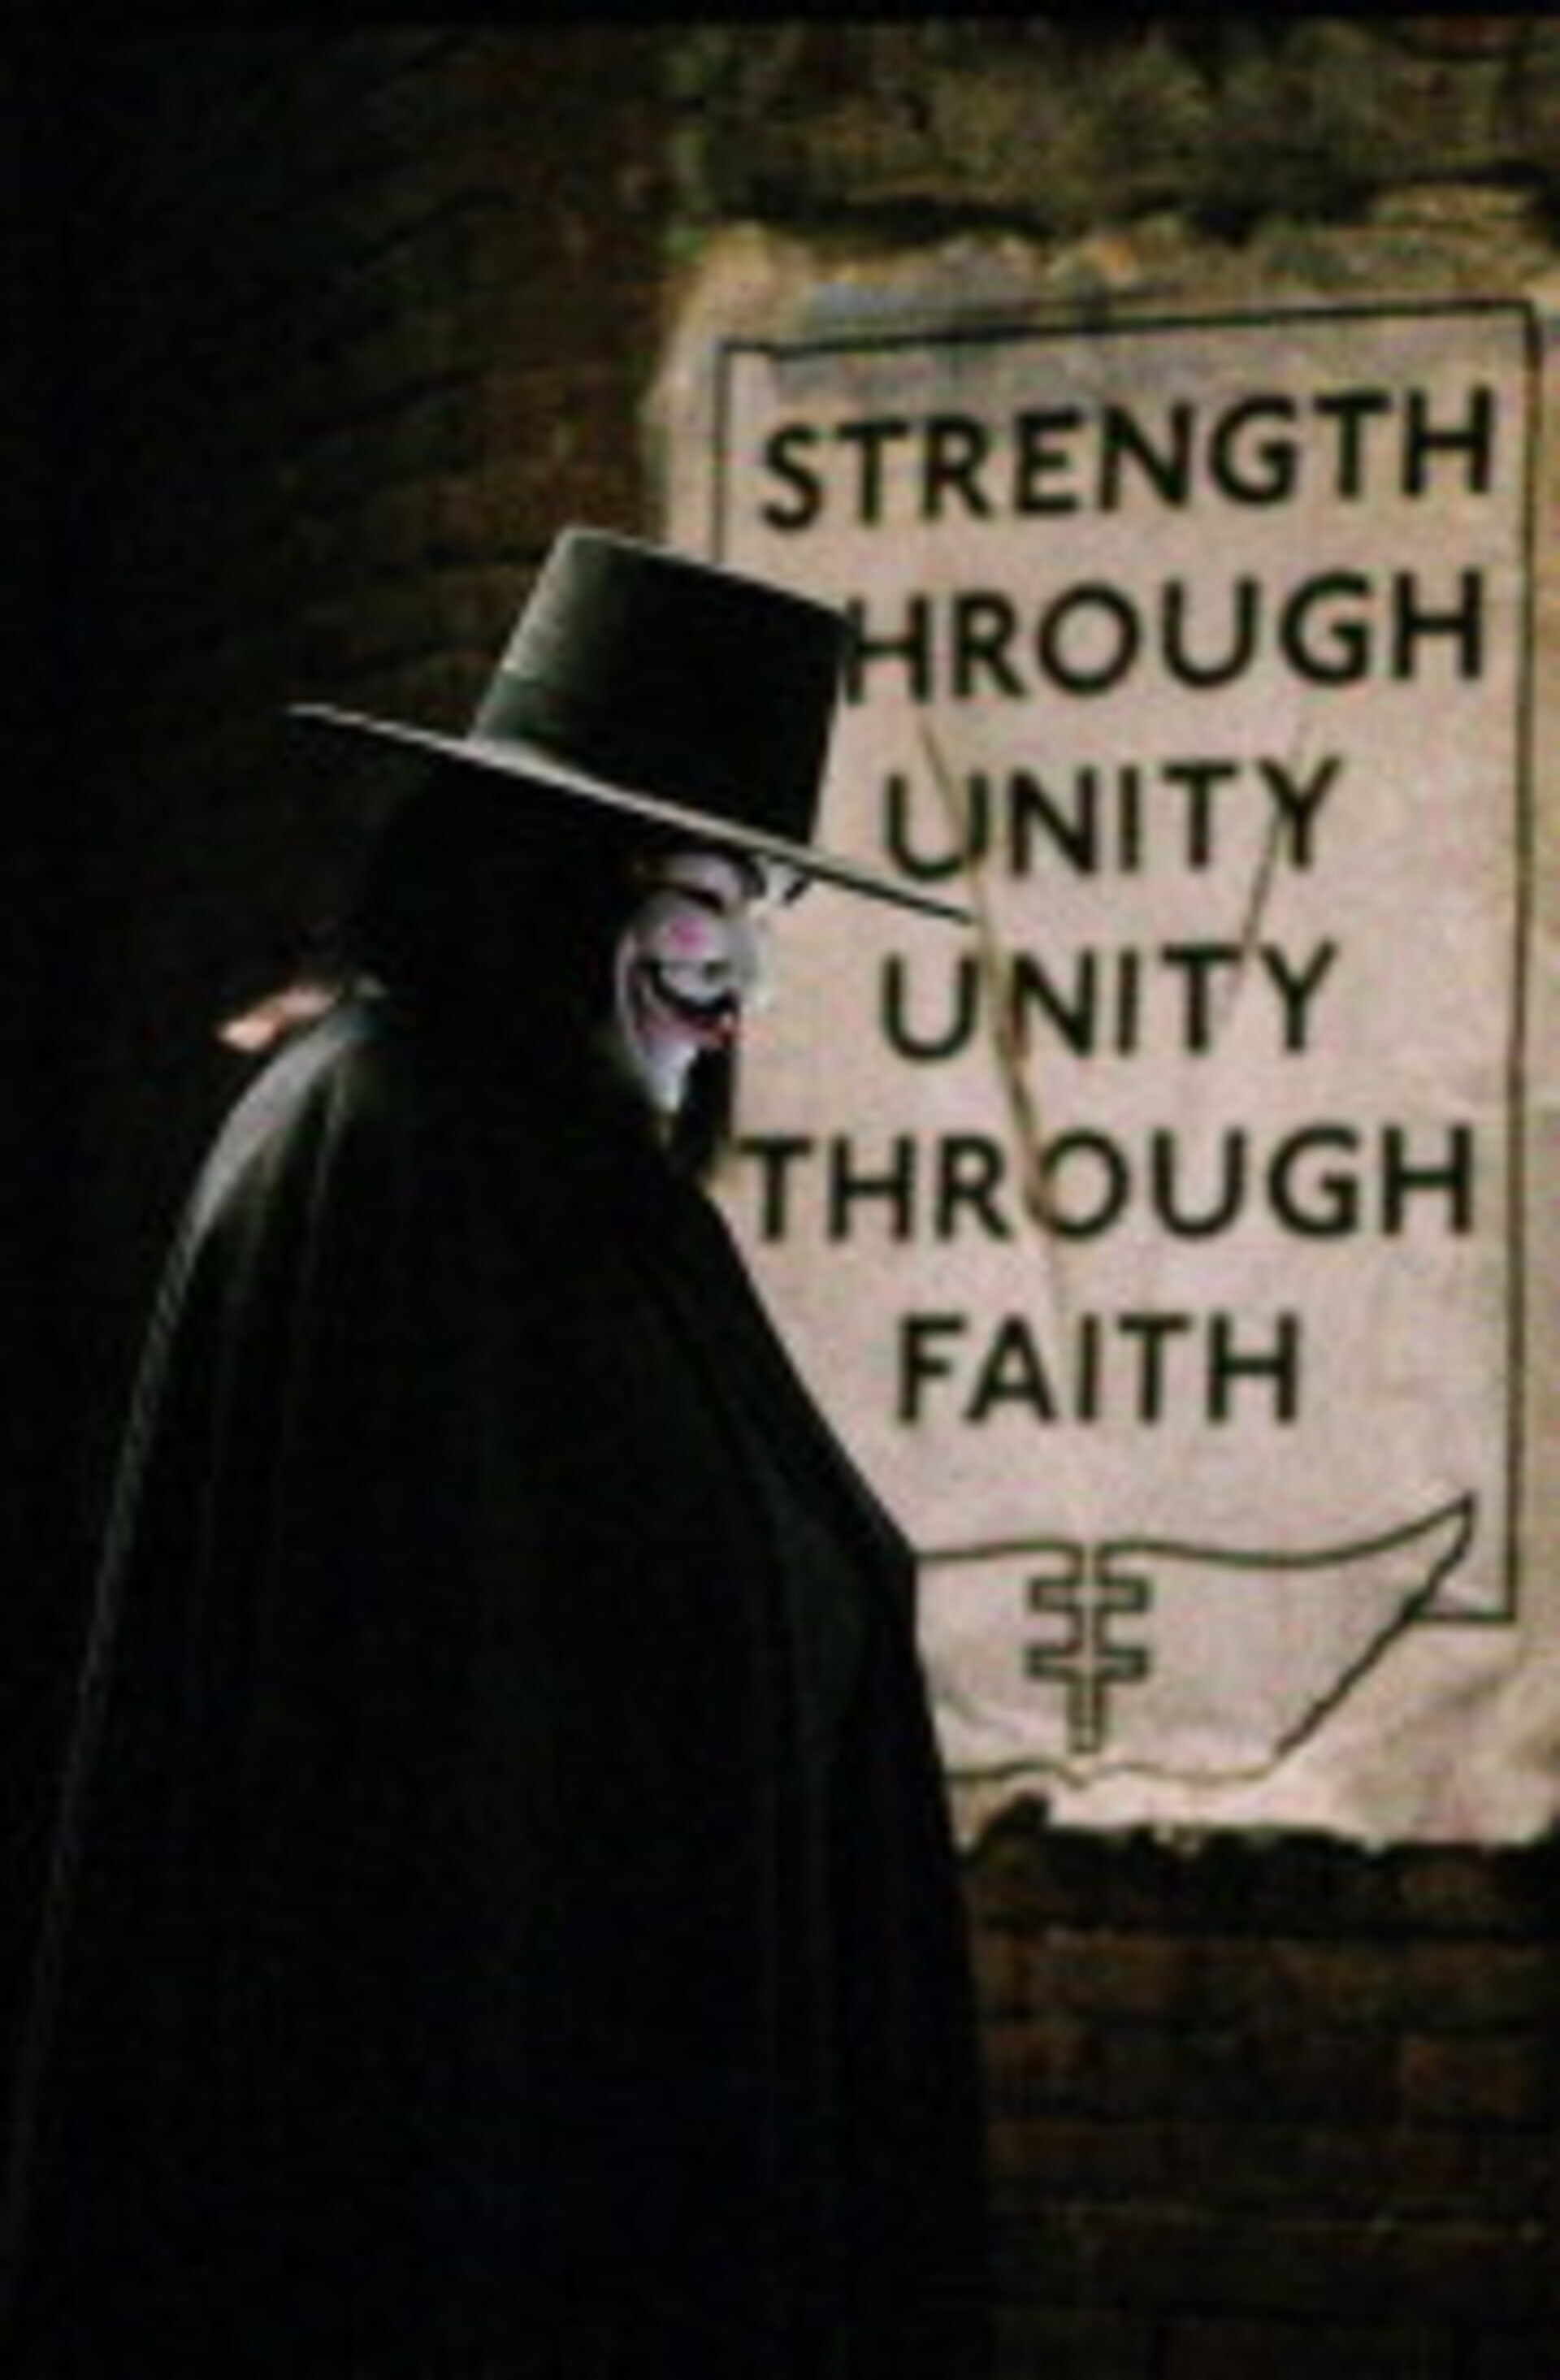 V for Vendetta - Image 37